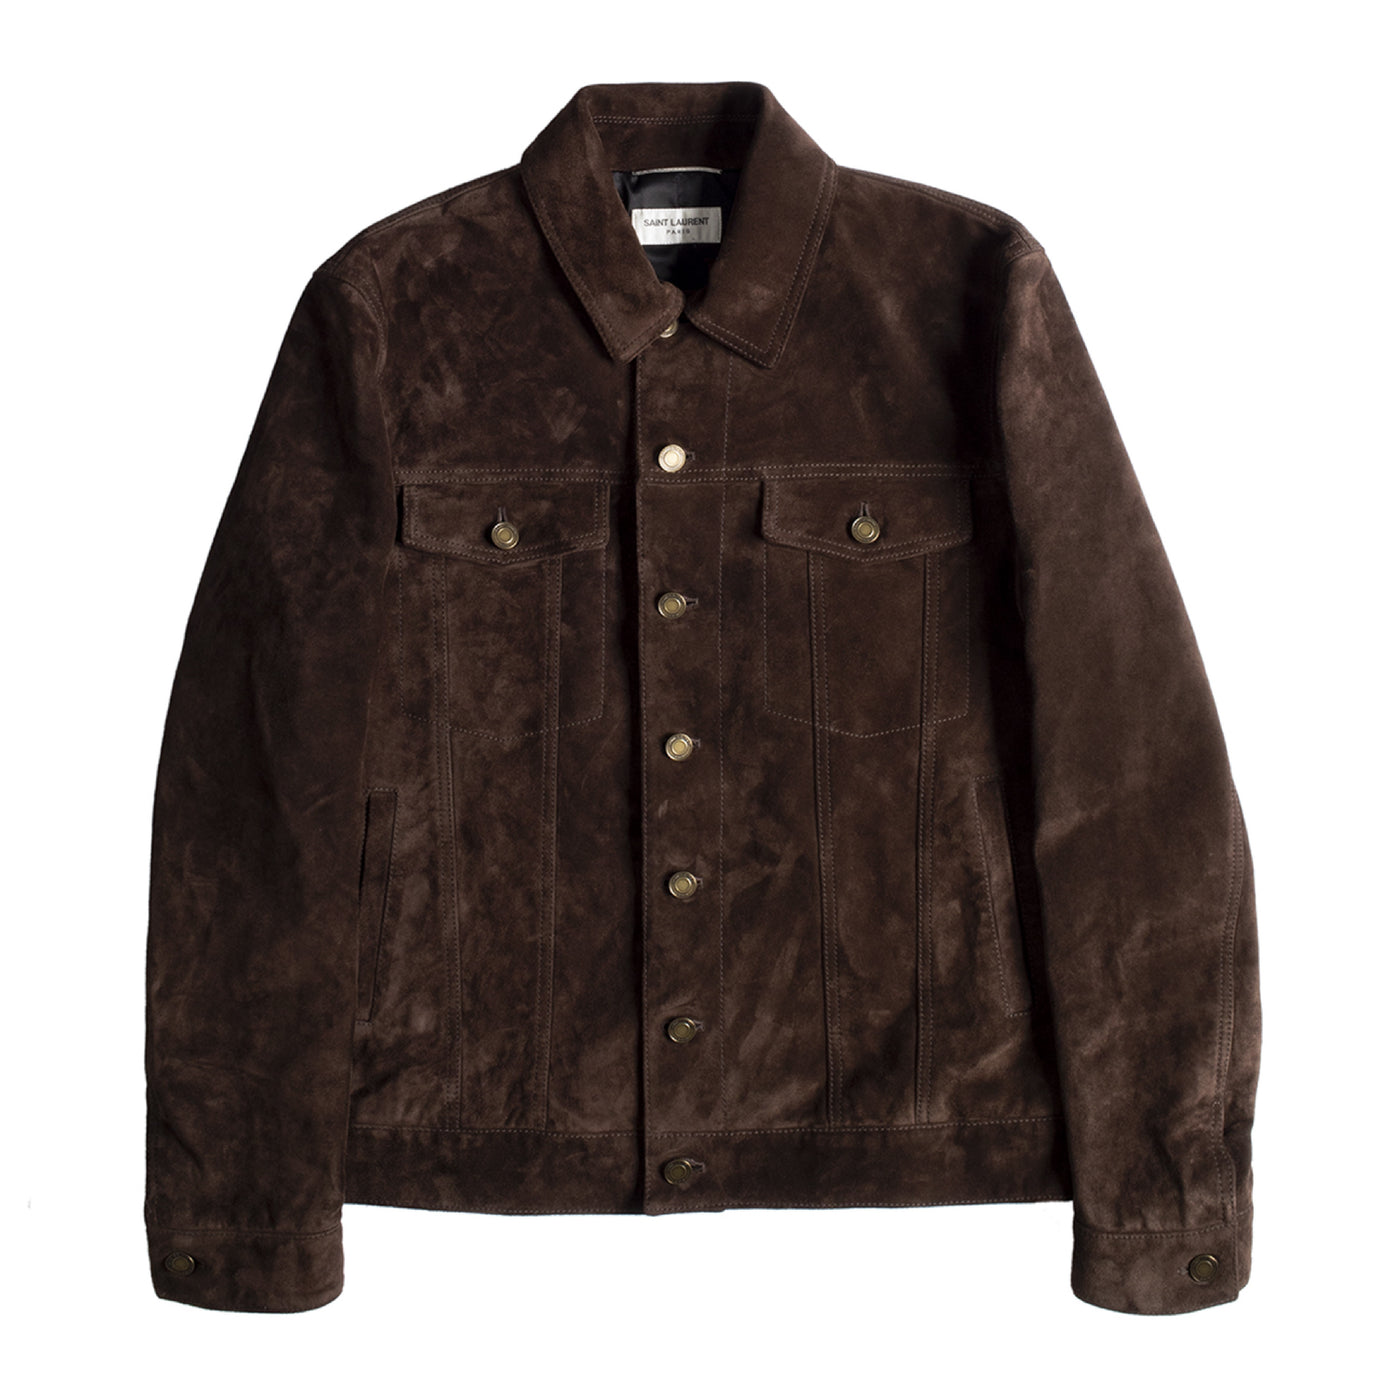 Load image into Gallery viewer, SAINT LAURENT CLASSIC DENIM JACKET BROWN